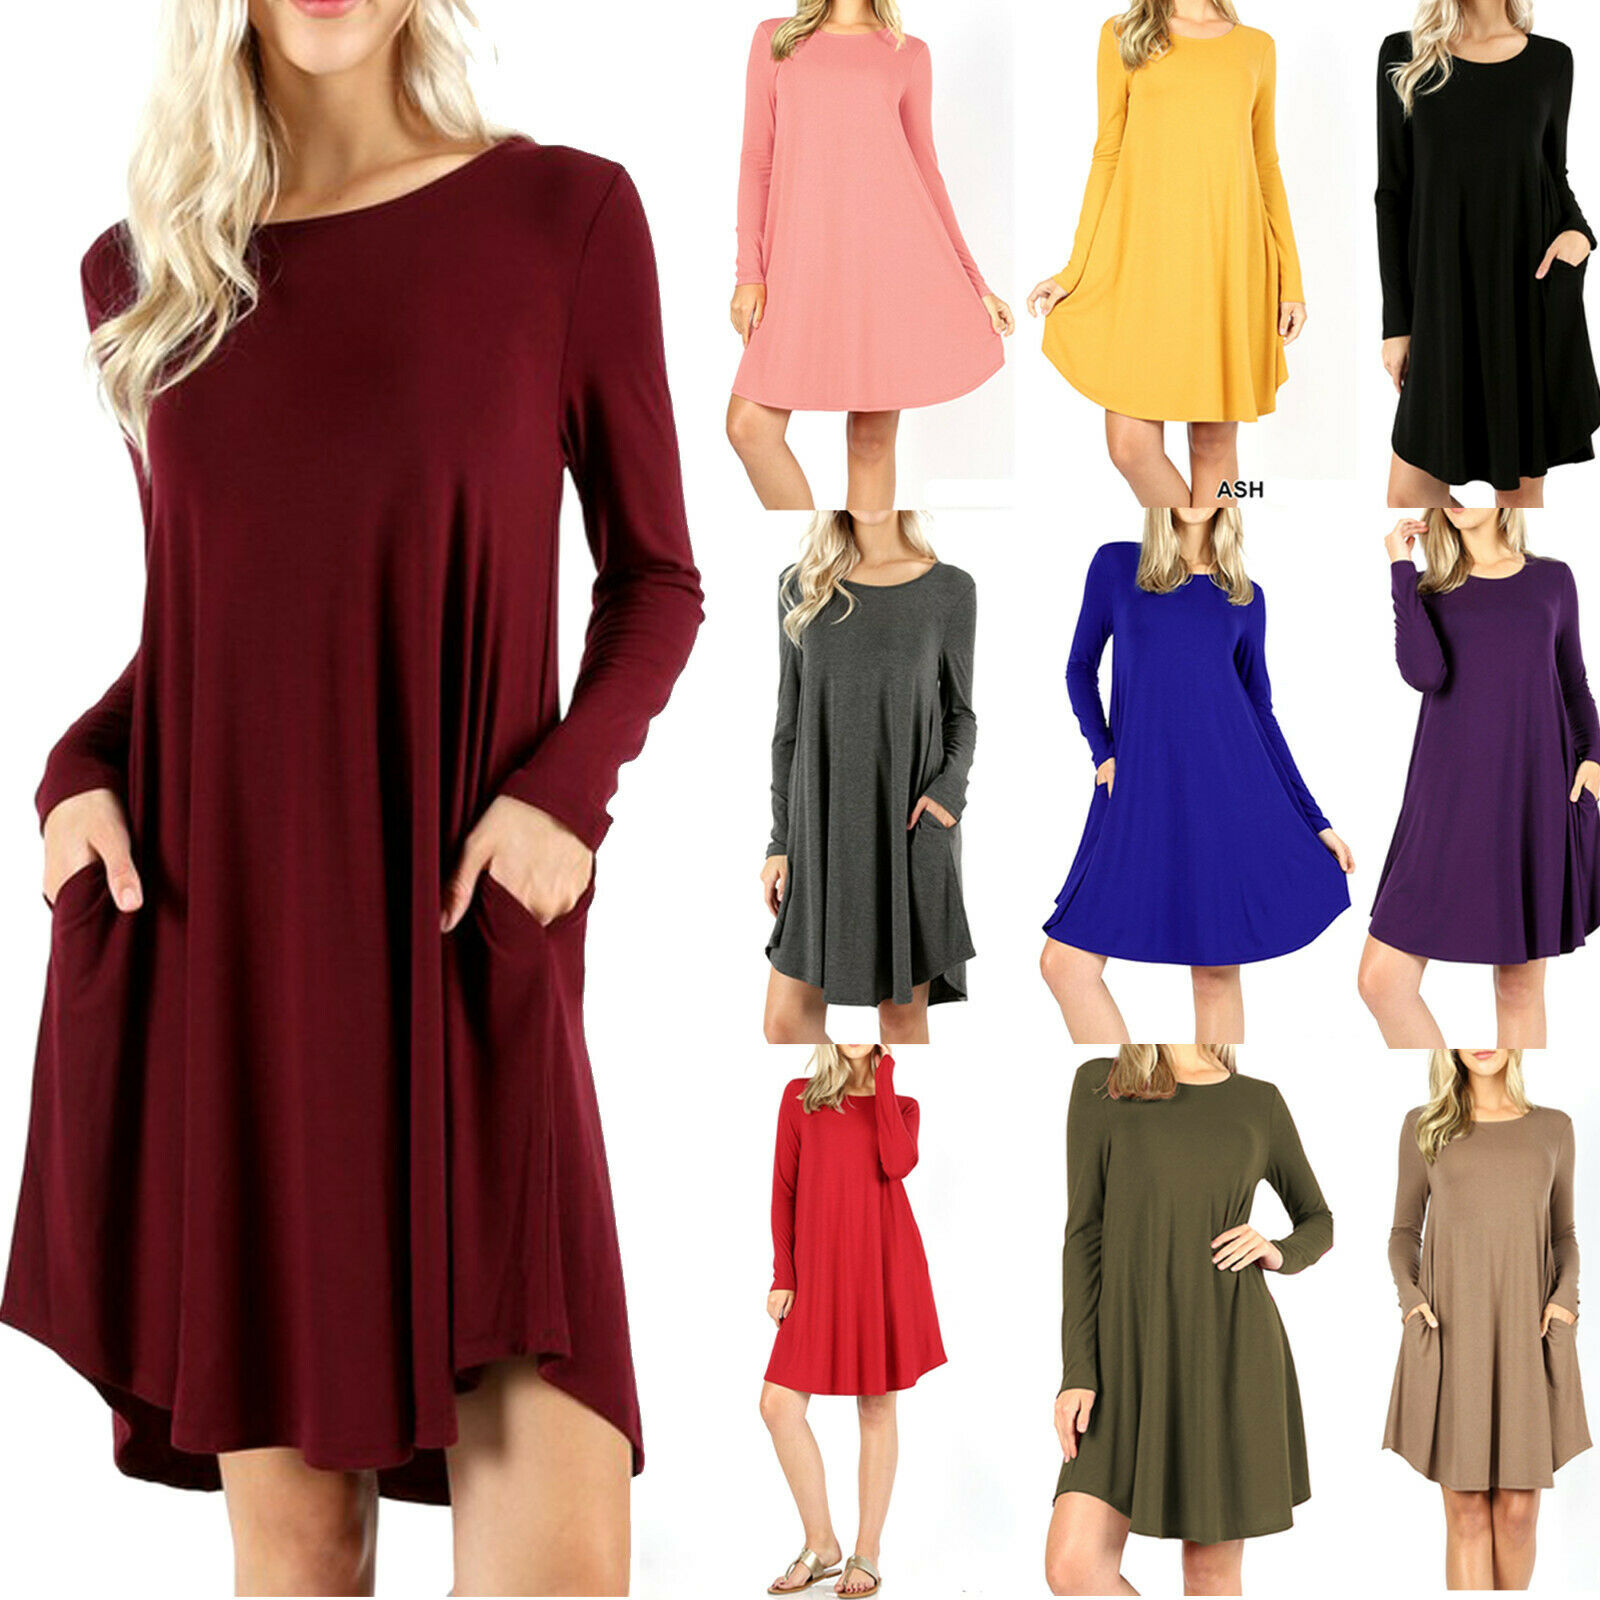 Women's Long Sleeve Day Dress with Side Pockets Swing Fall Tunic T-Shirt Casual Clothing, Shoes & Accessories